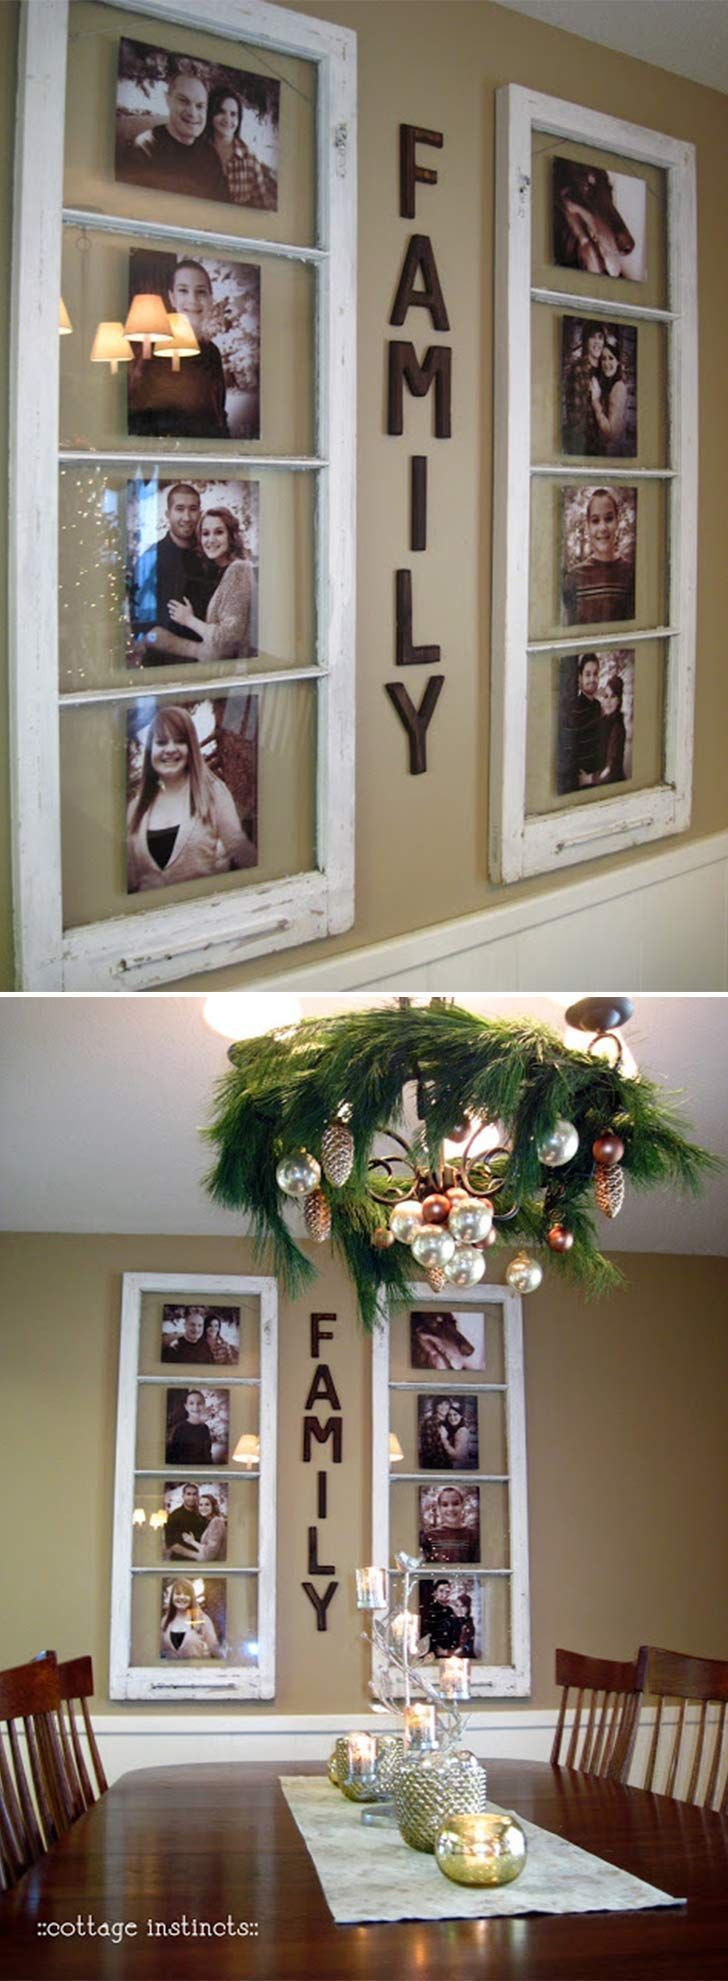 Window on wall decor  diy family photo display click on image to see more home decor